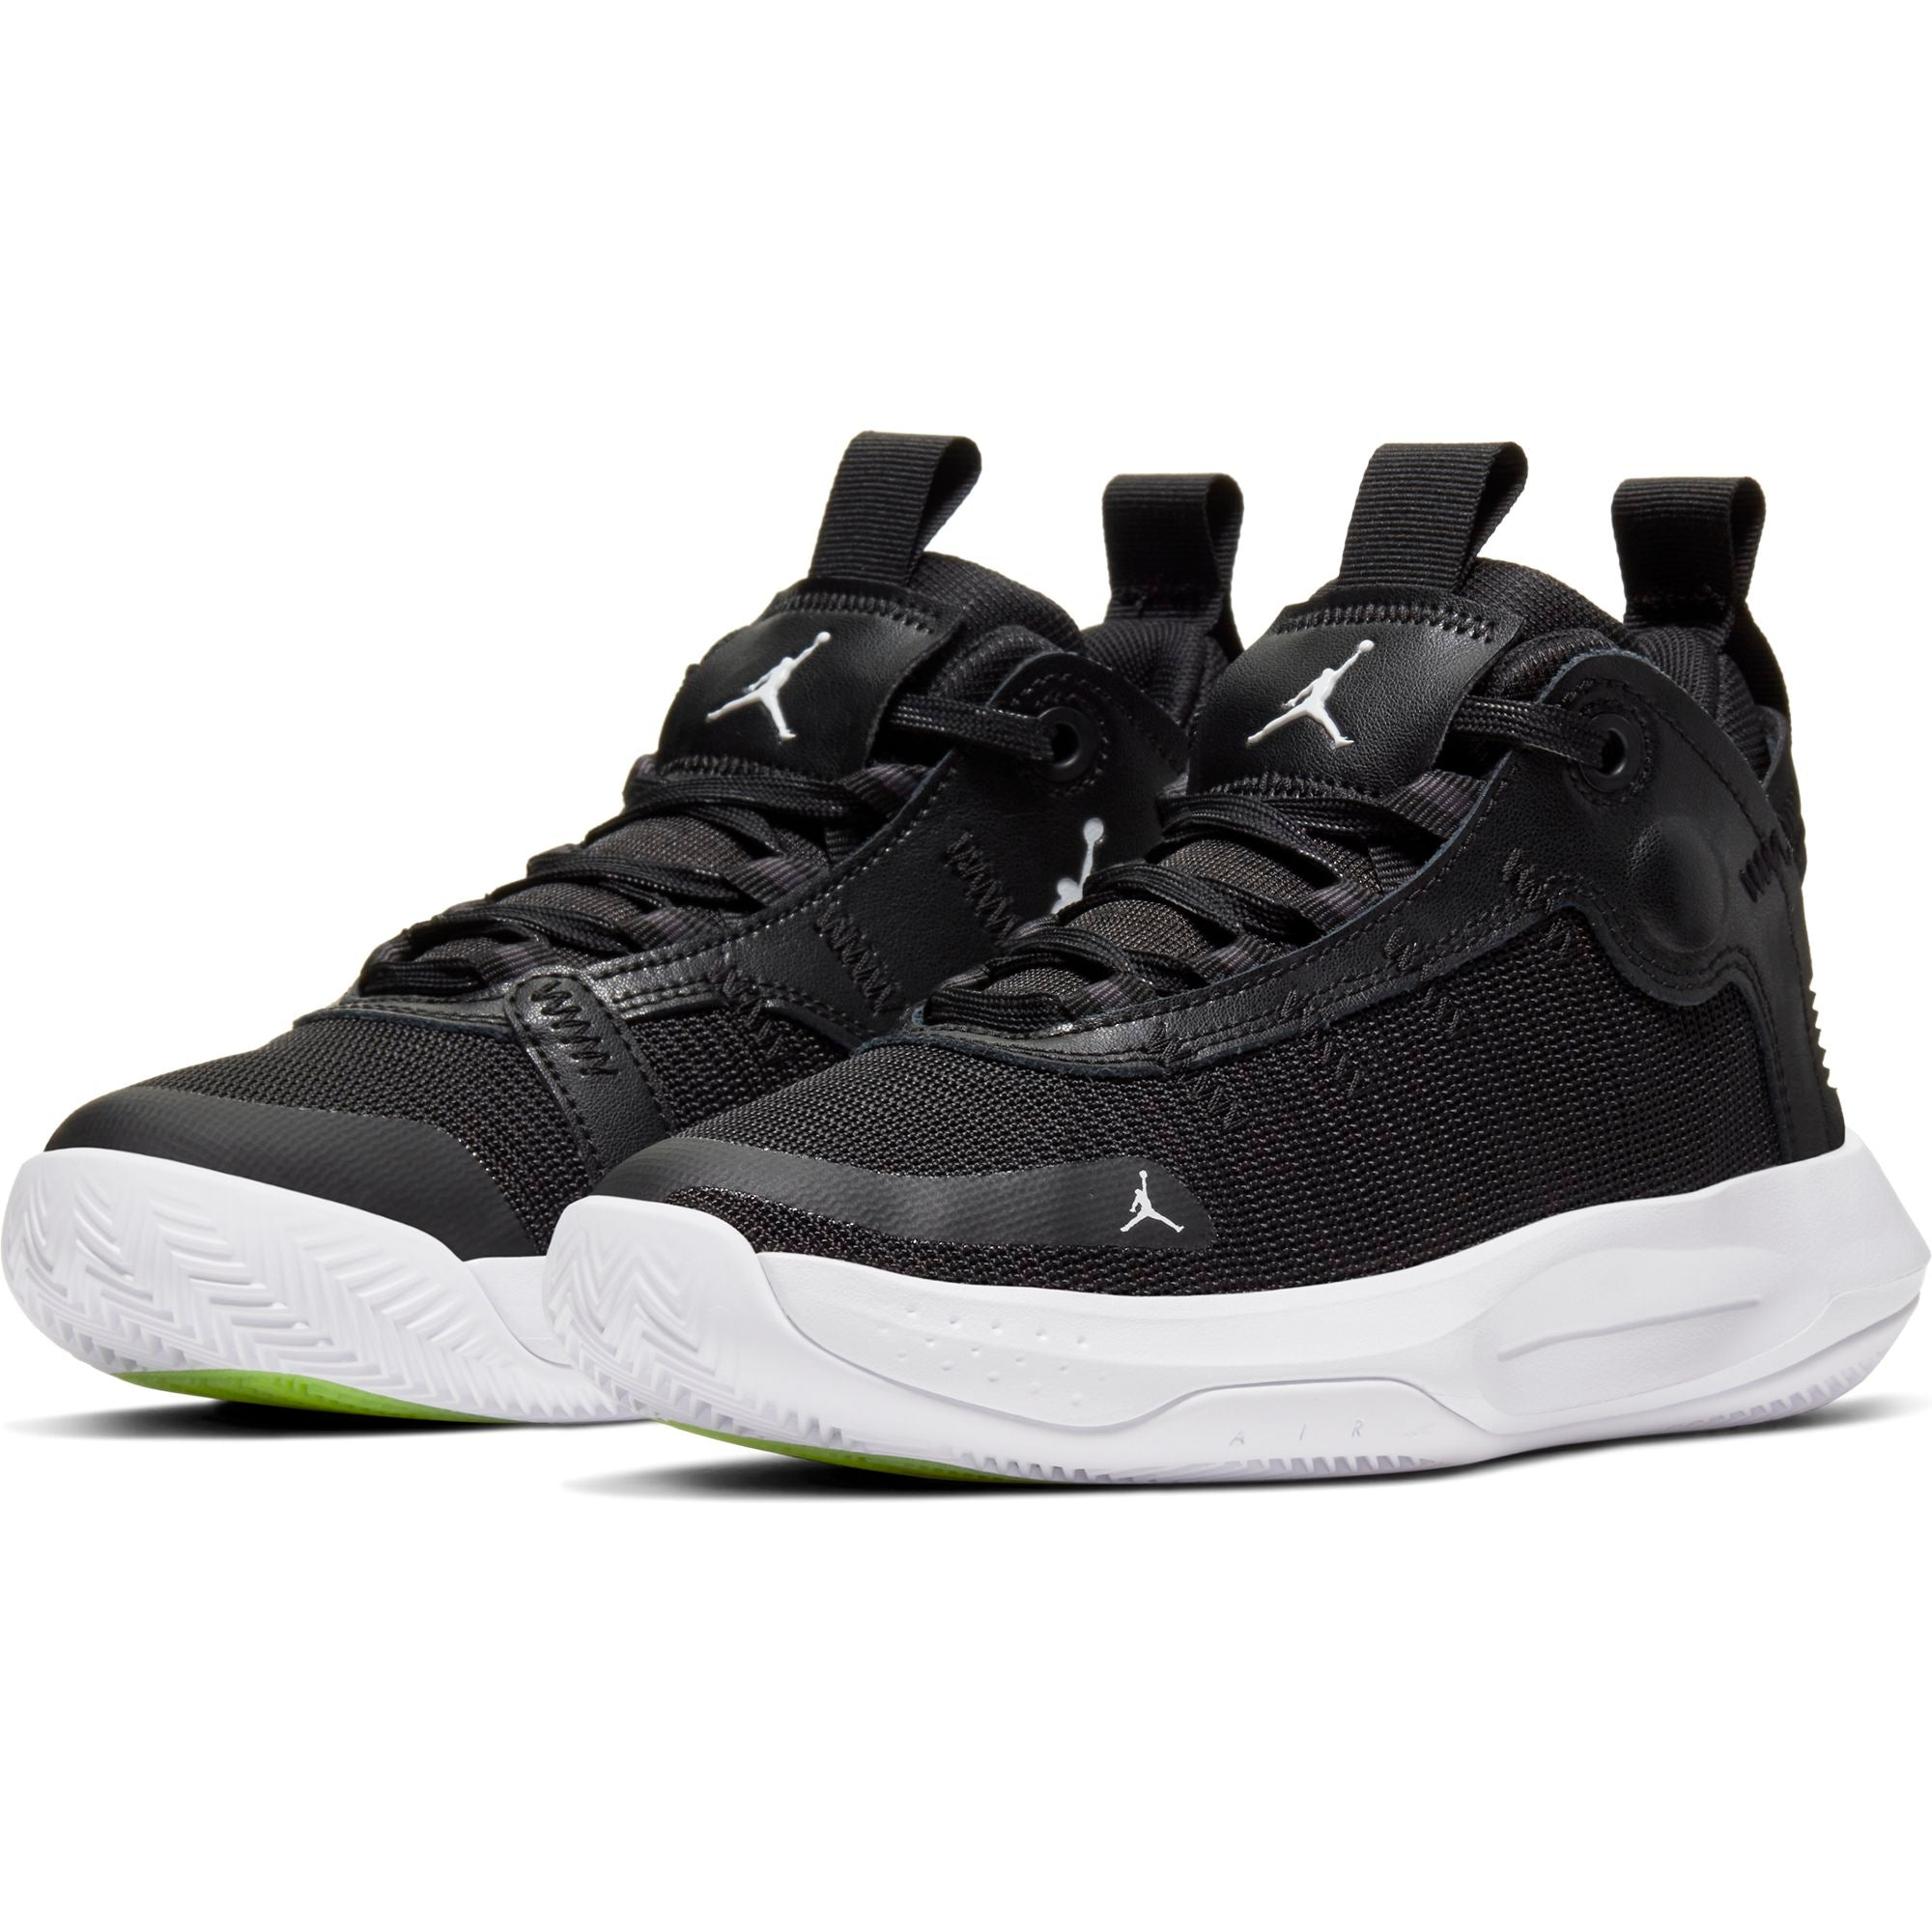 Nike Kids Jordan Jumpman 2020 Basketball Boot/shoe - Black/White/Electric Green